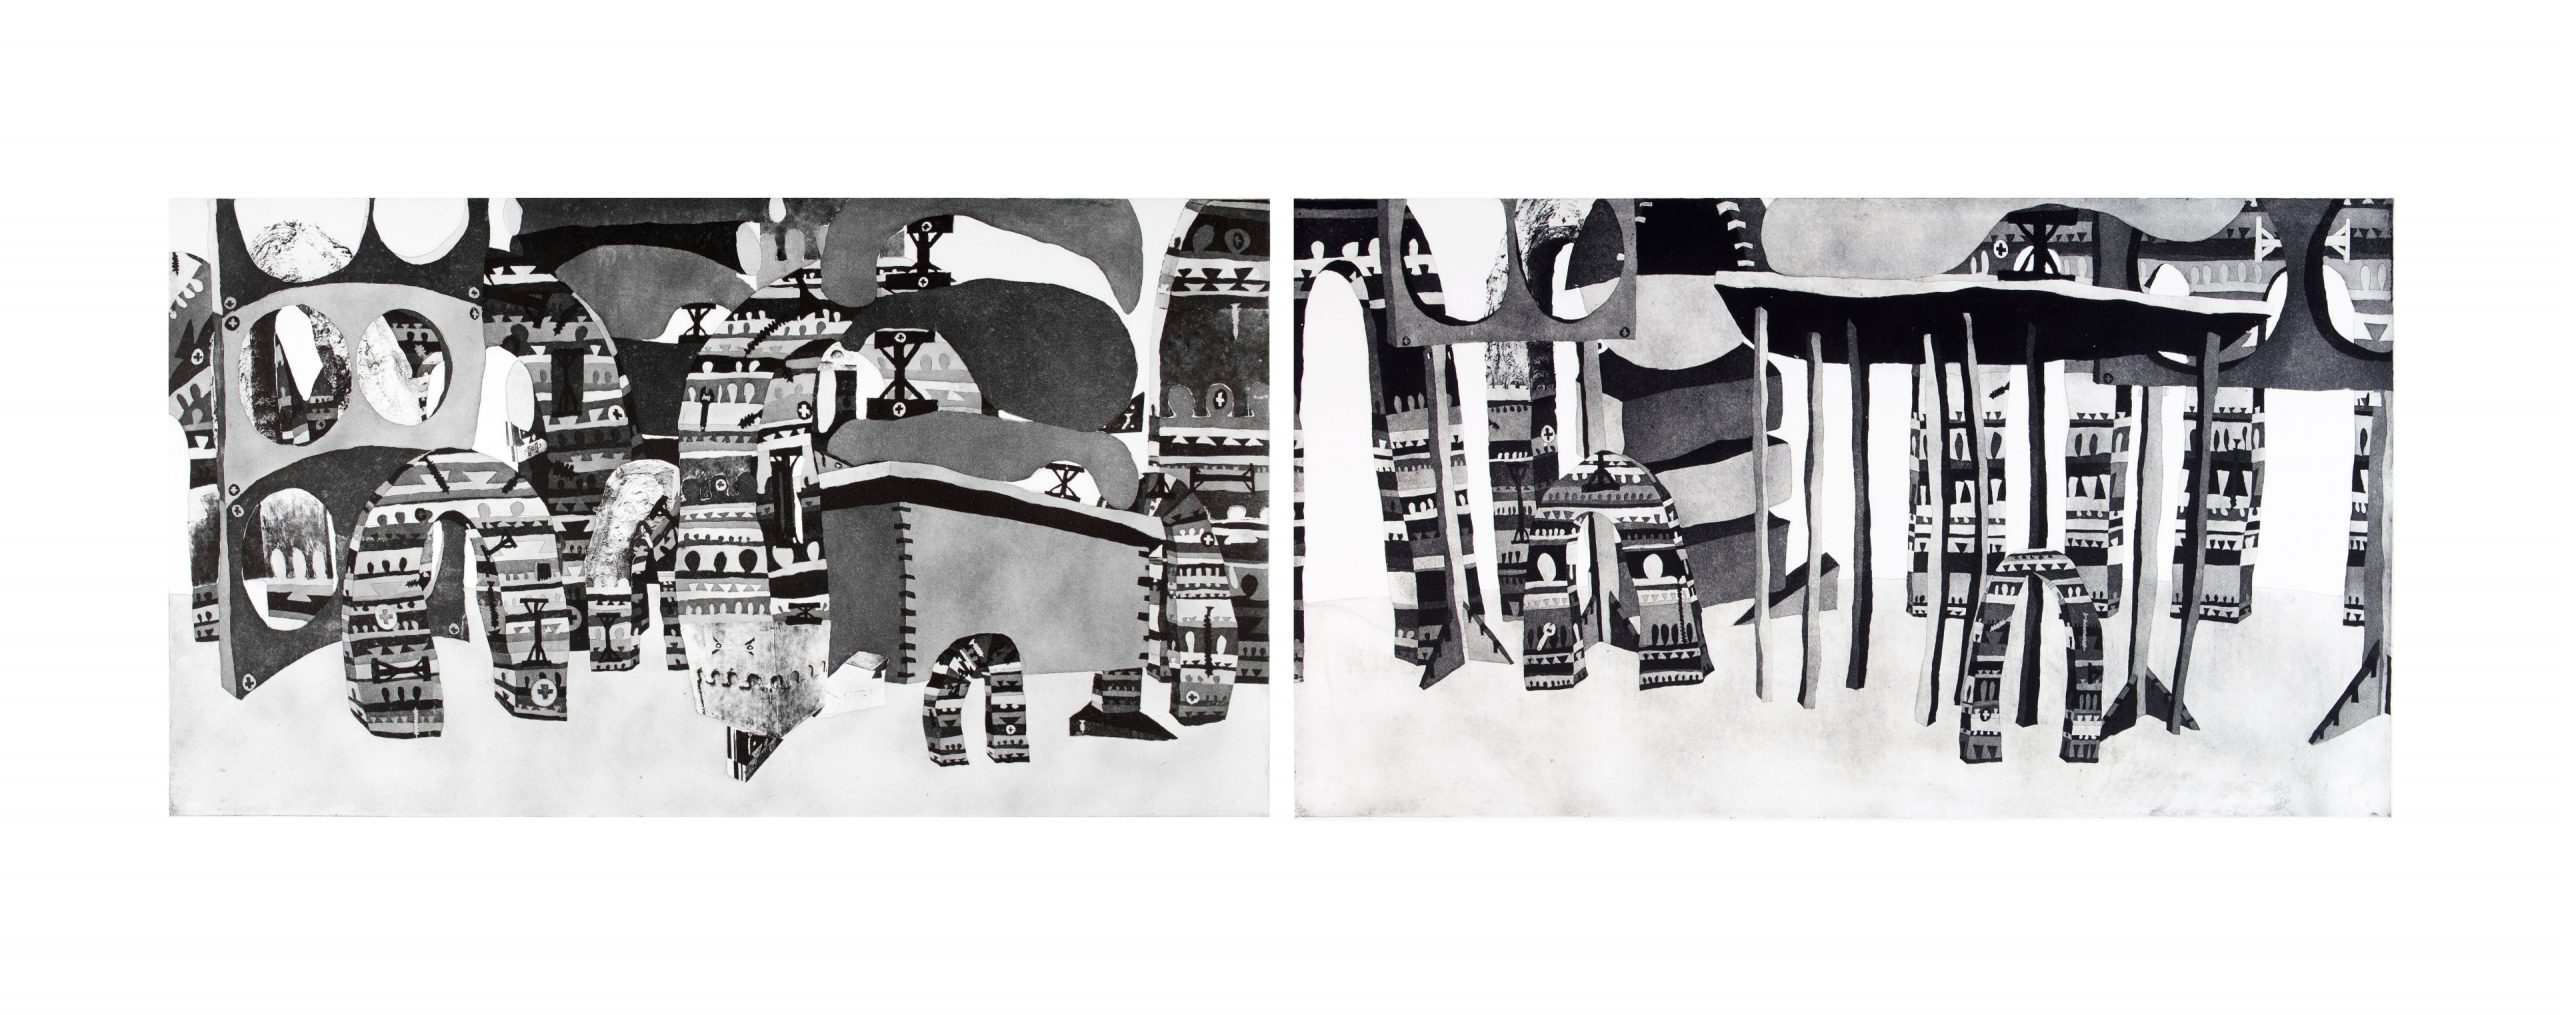 'Double Trouble_' 280 x 83cm_Aquating and Photo-Etching on Two seperate Copper Plates